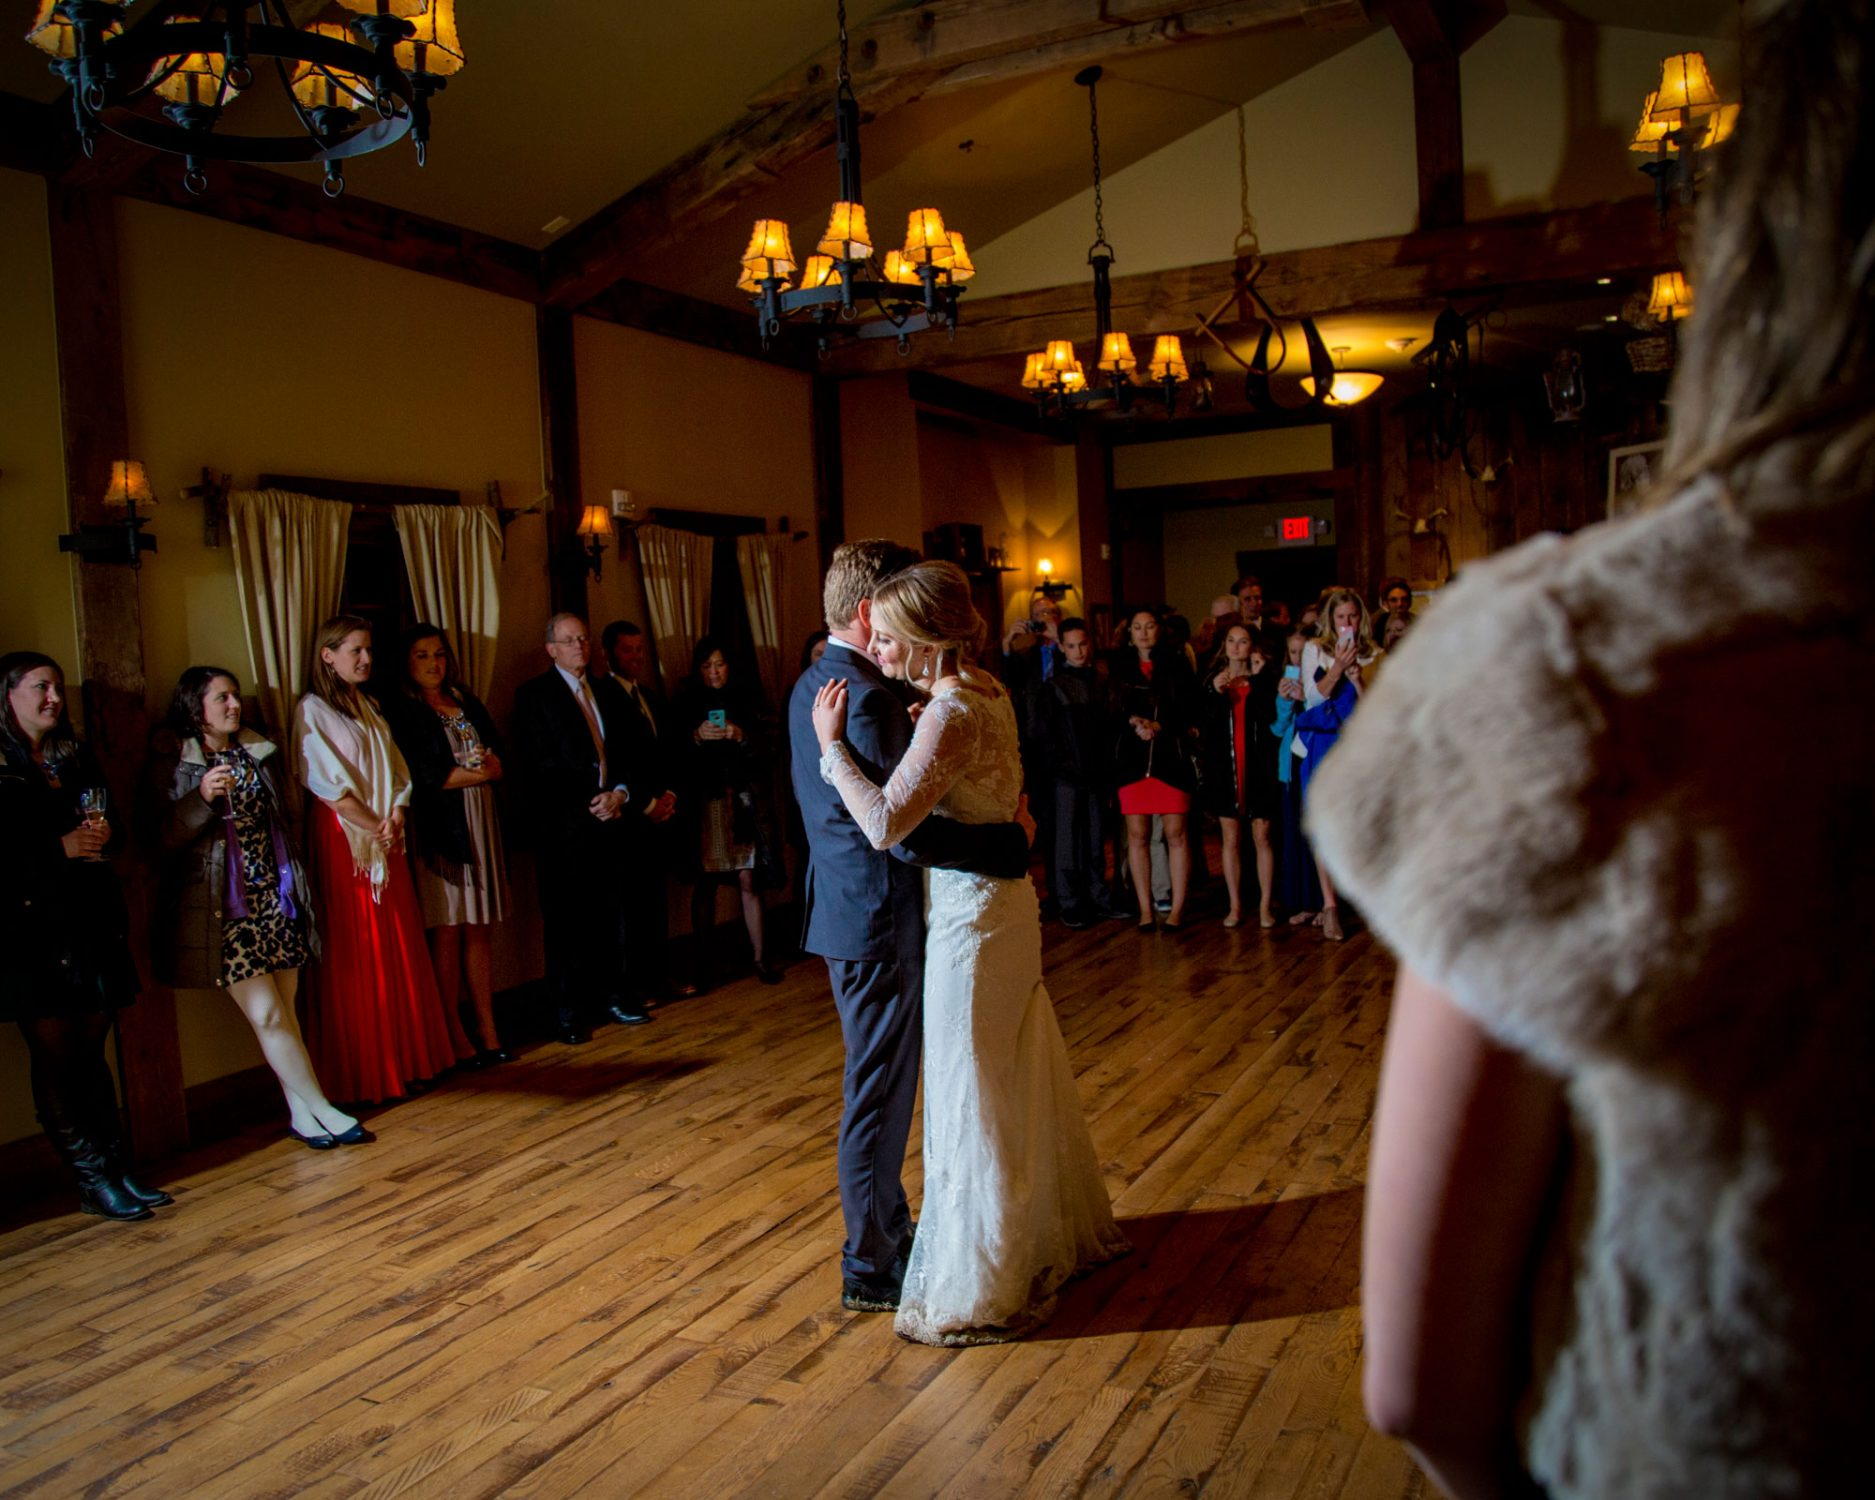 First wedding dance at Crested Butte Mountain Resort, Colorado